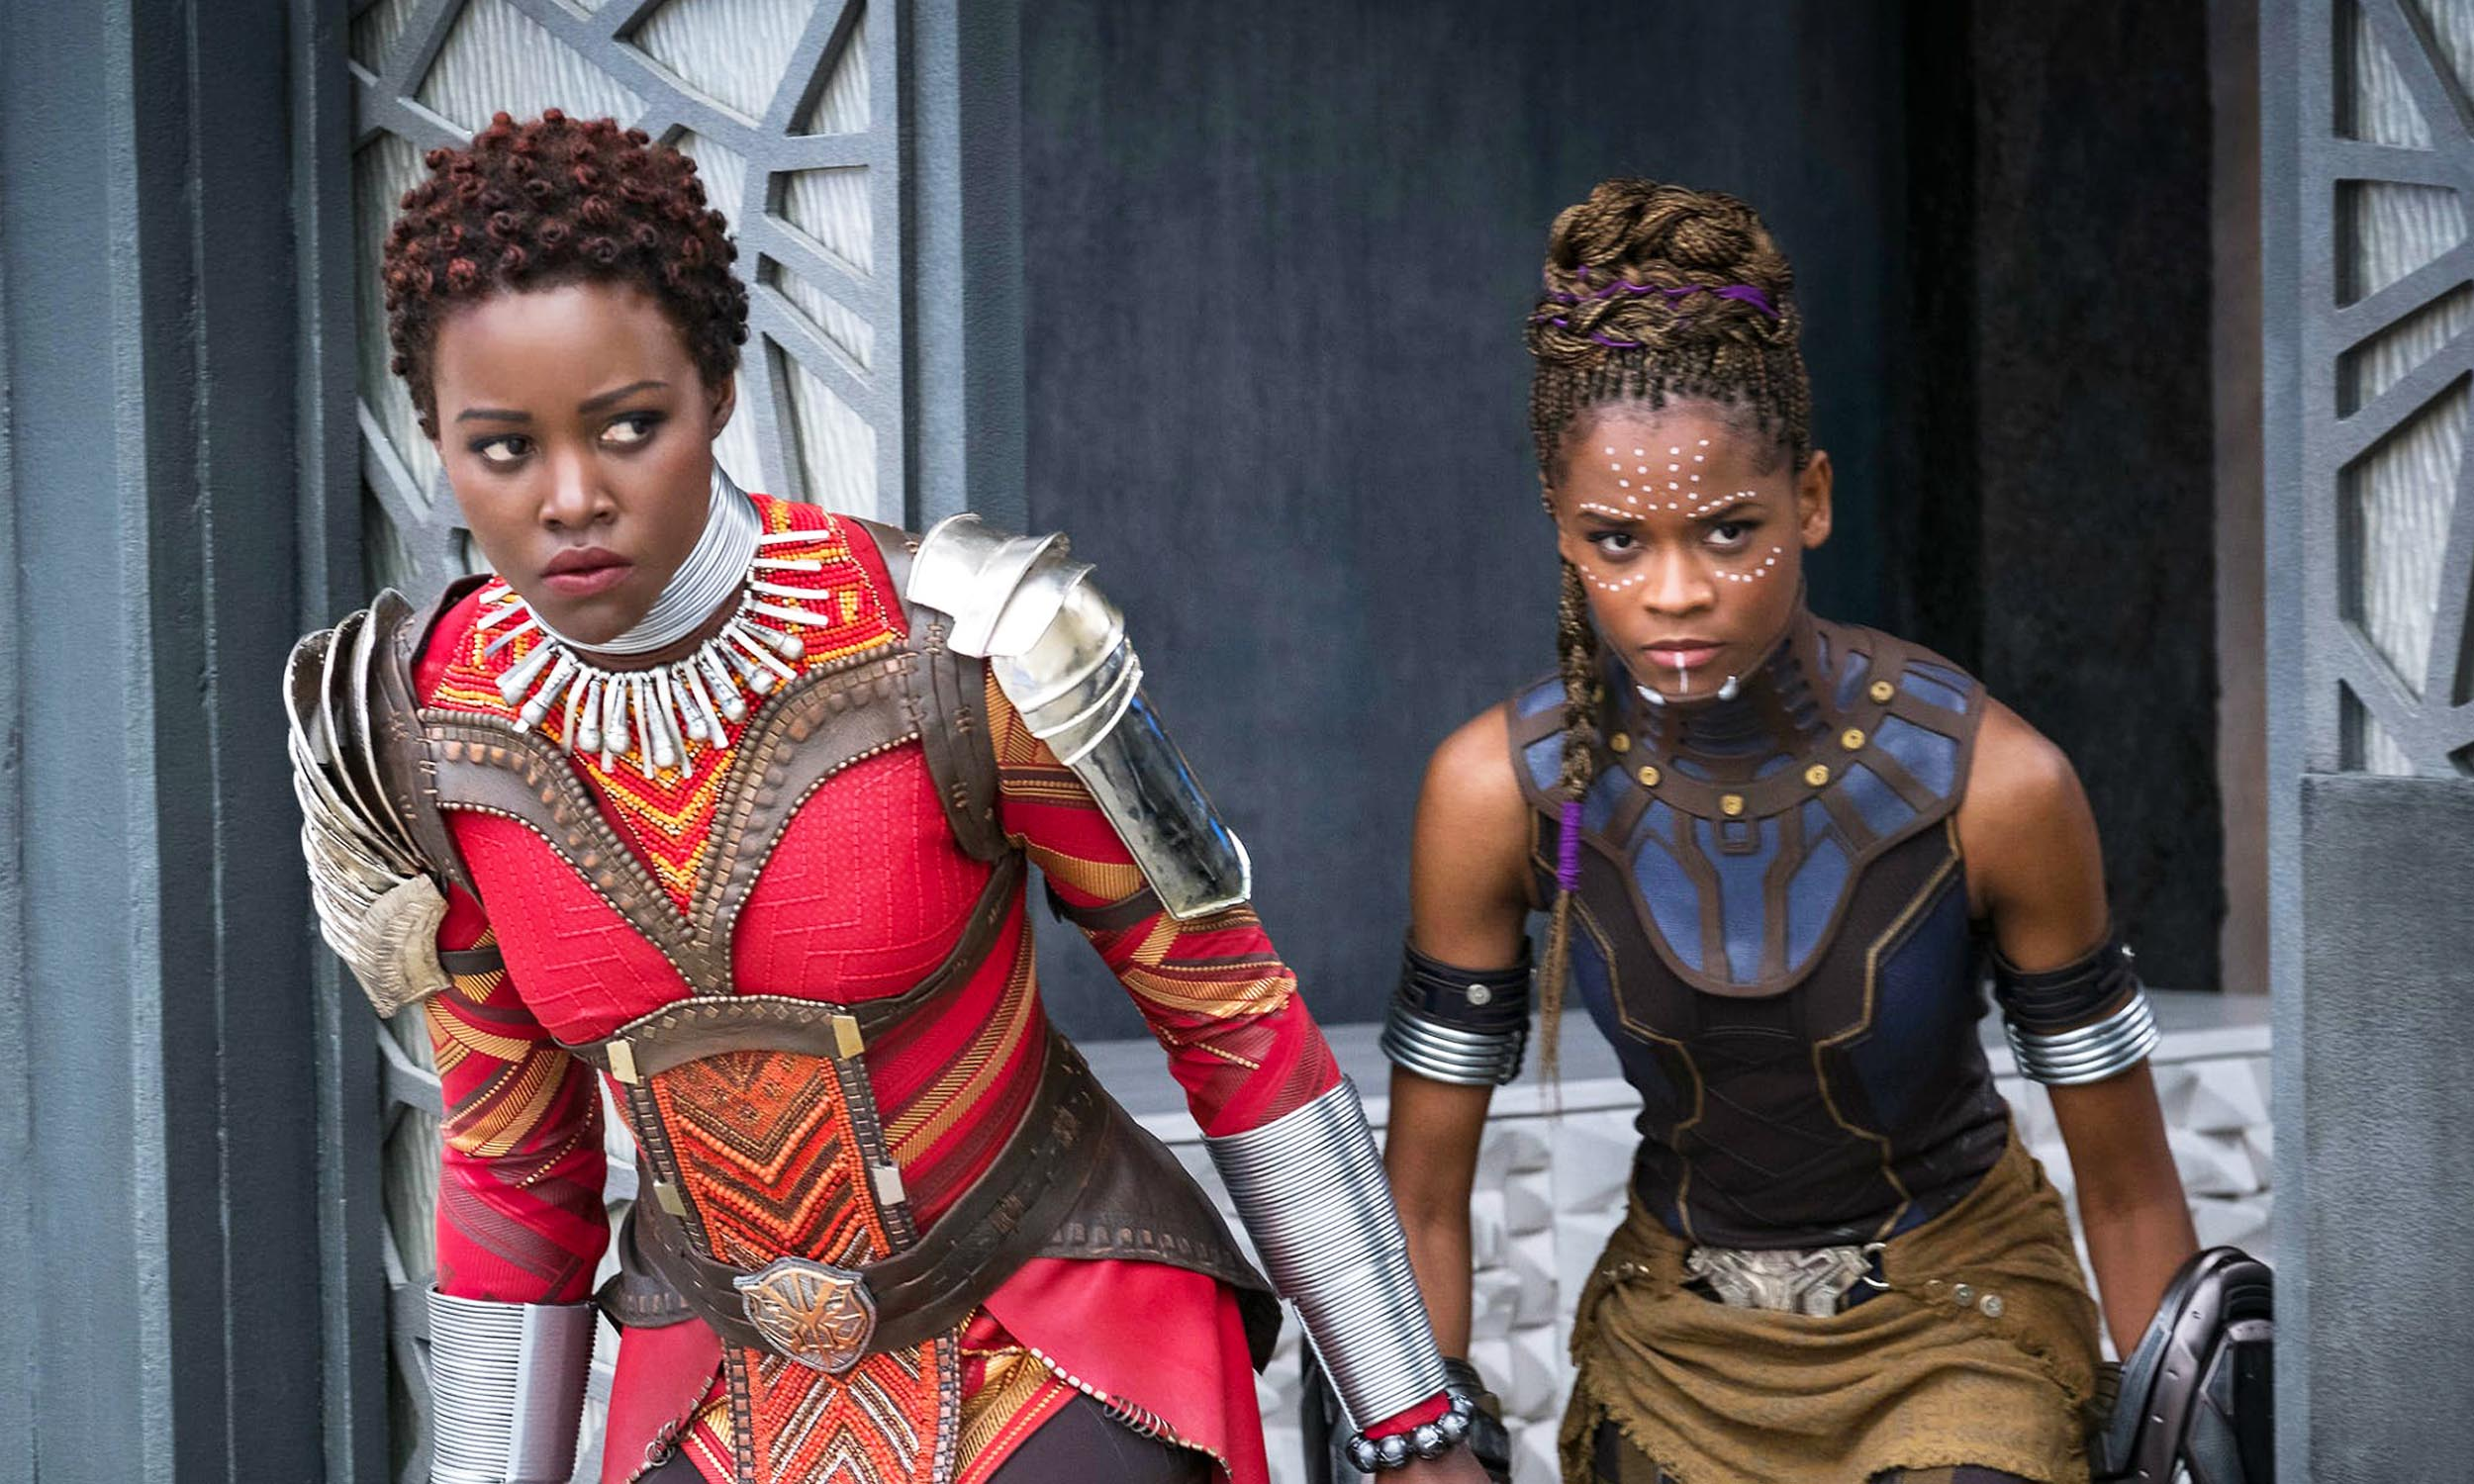 Black Panther - Scene from Marvel Studios Black Panther - Nakia and Shuri - Lupita Nyong'o and Letitia Wright; #WakandaForever, #WhatBlackPantherMeansToYou